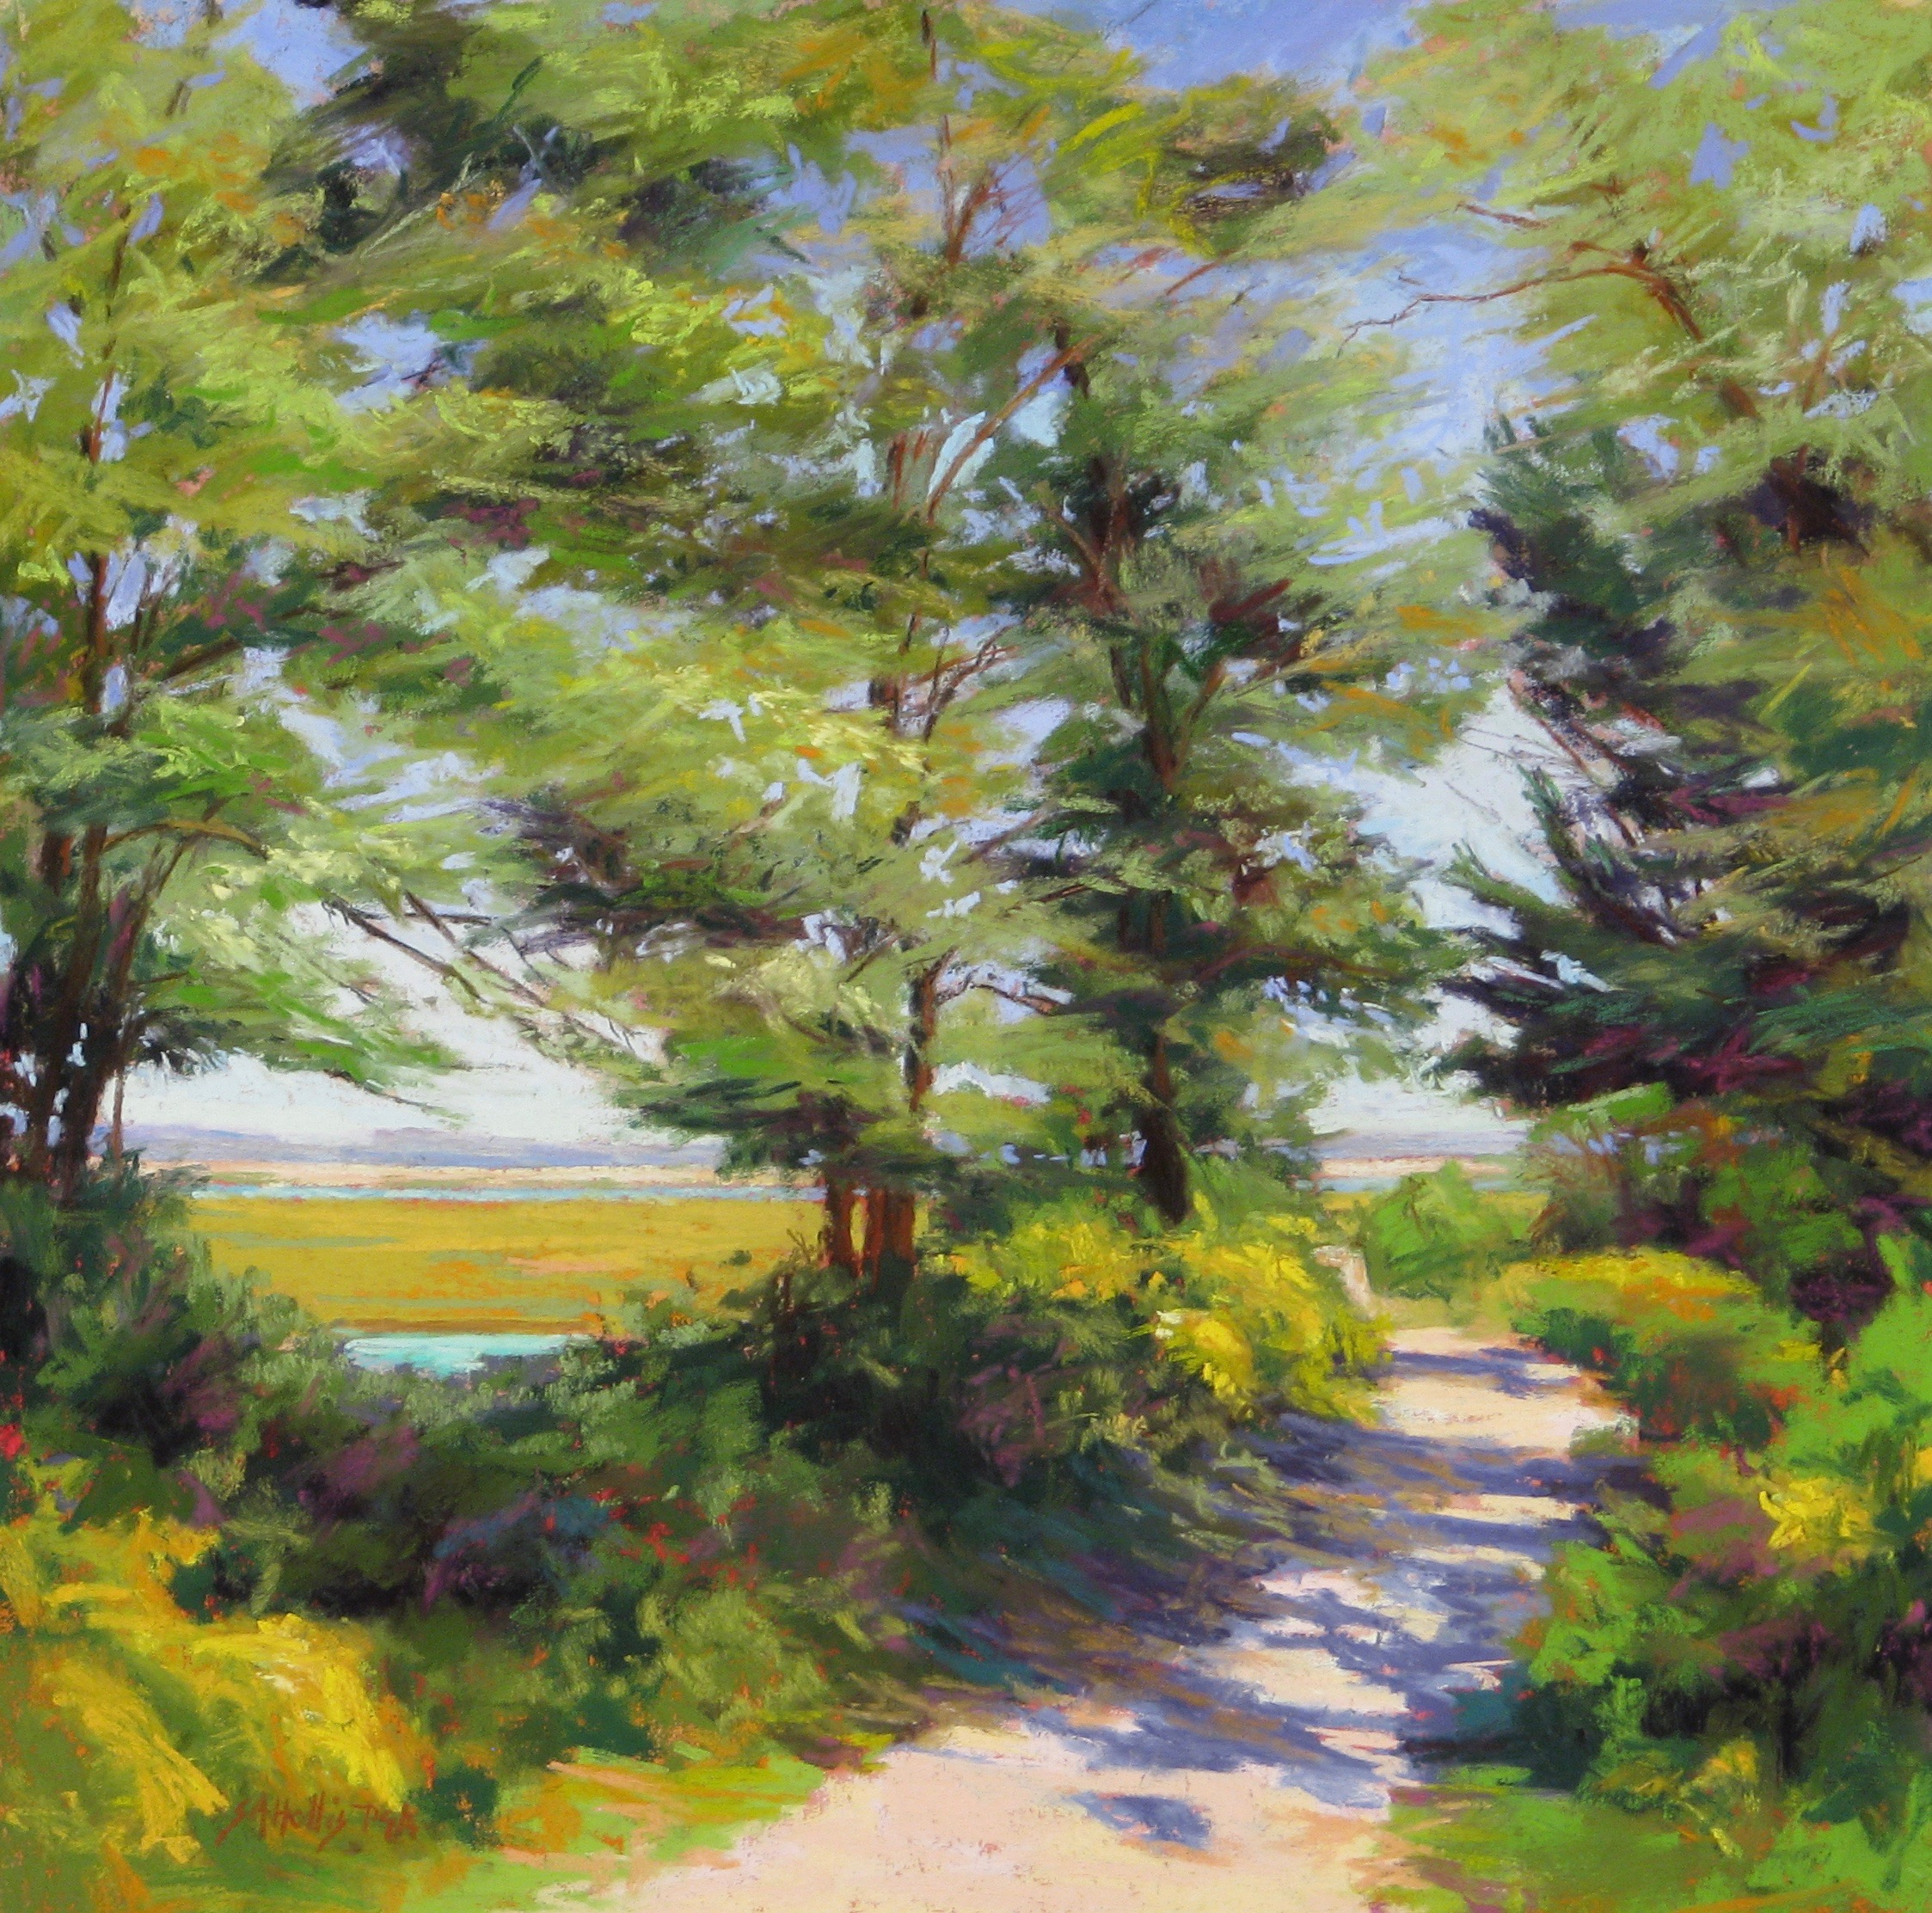 All Work Square at Creative Art Center Chatham, MA - July 19 - August 29